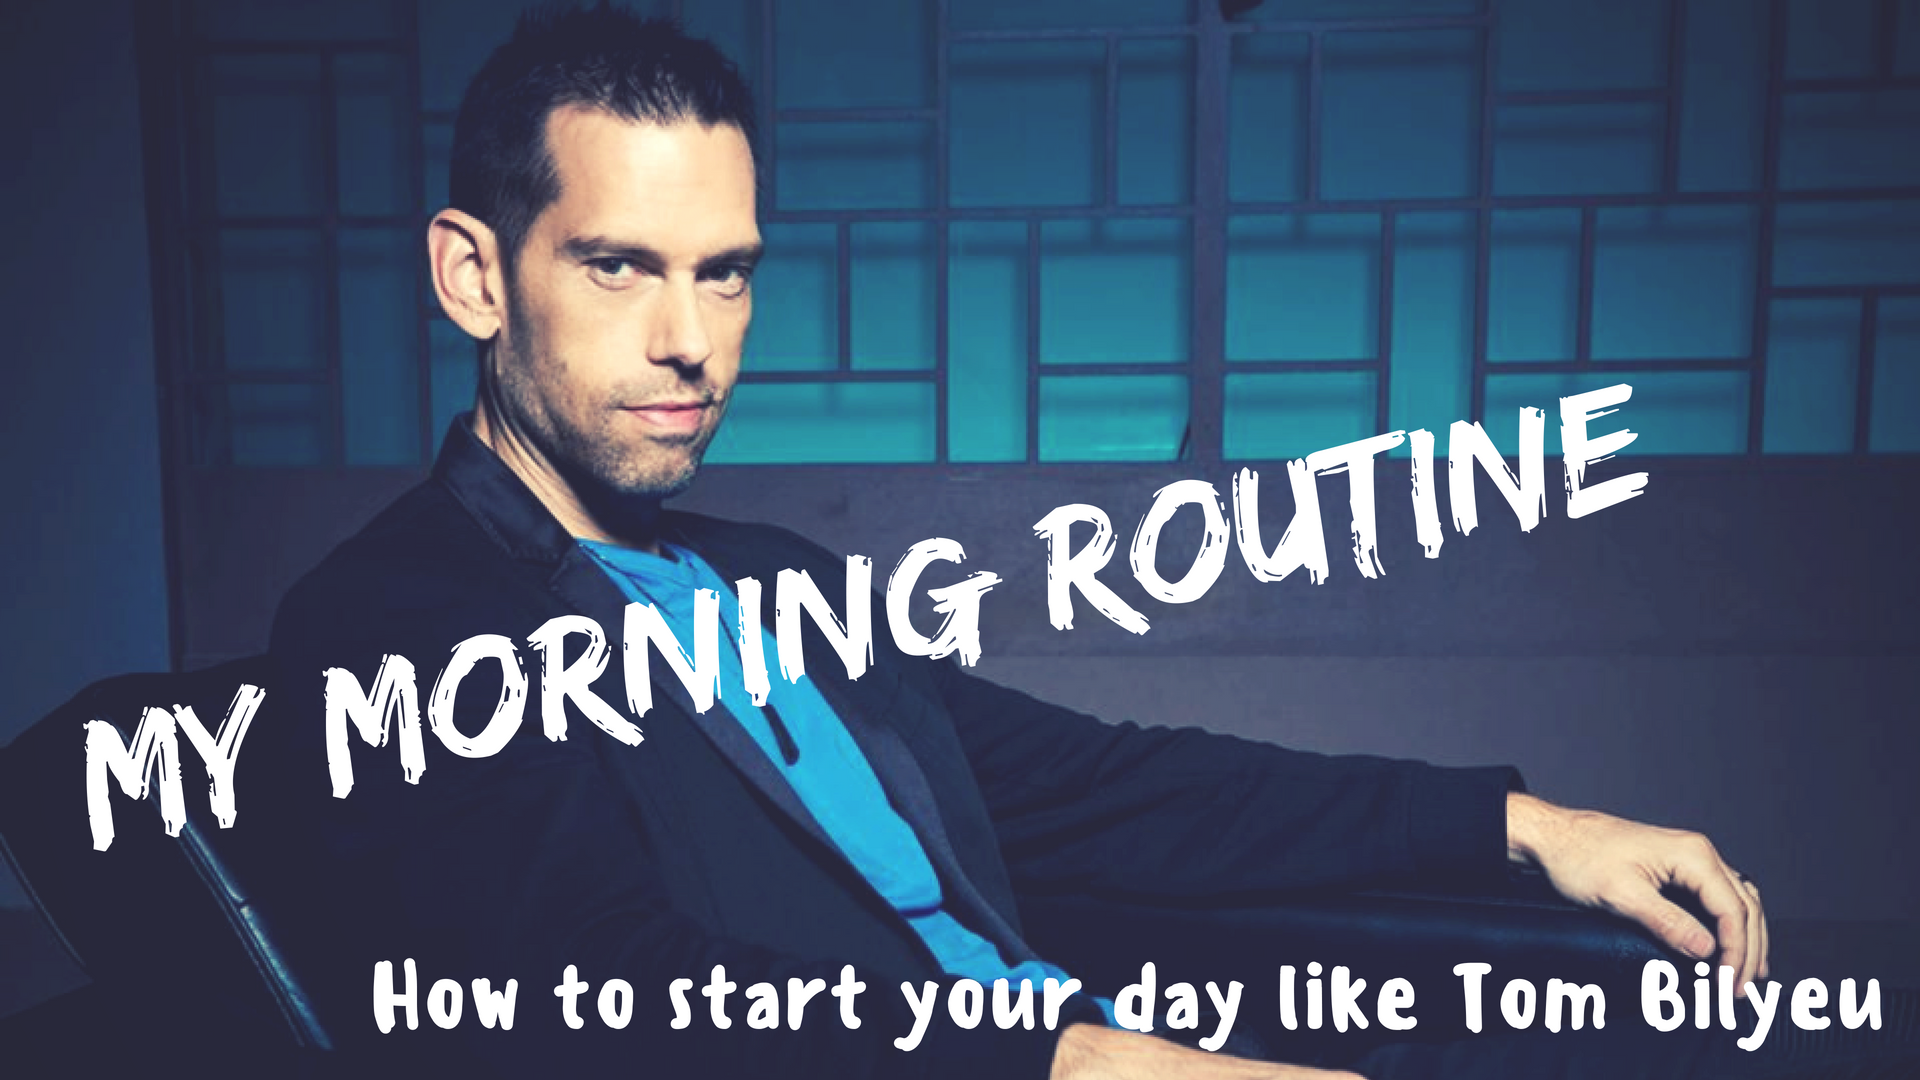 The Tom Bilyeu Morning Routine